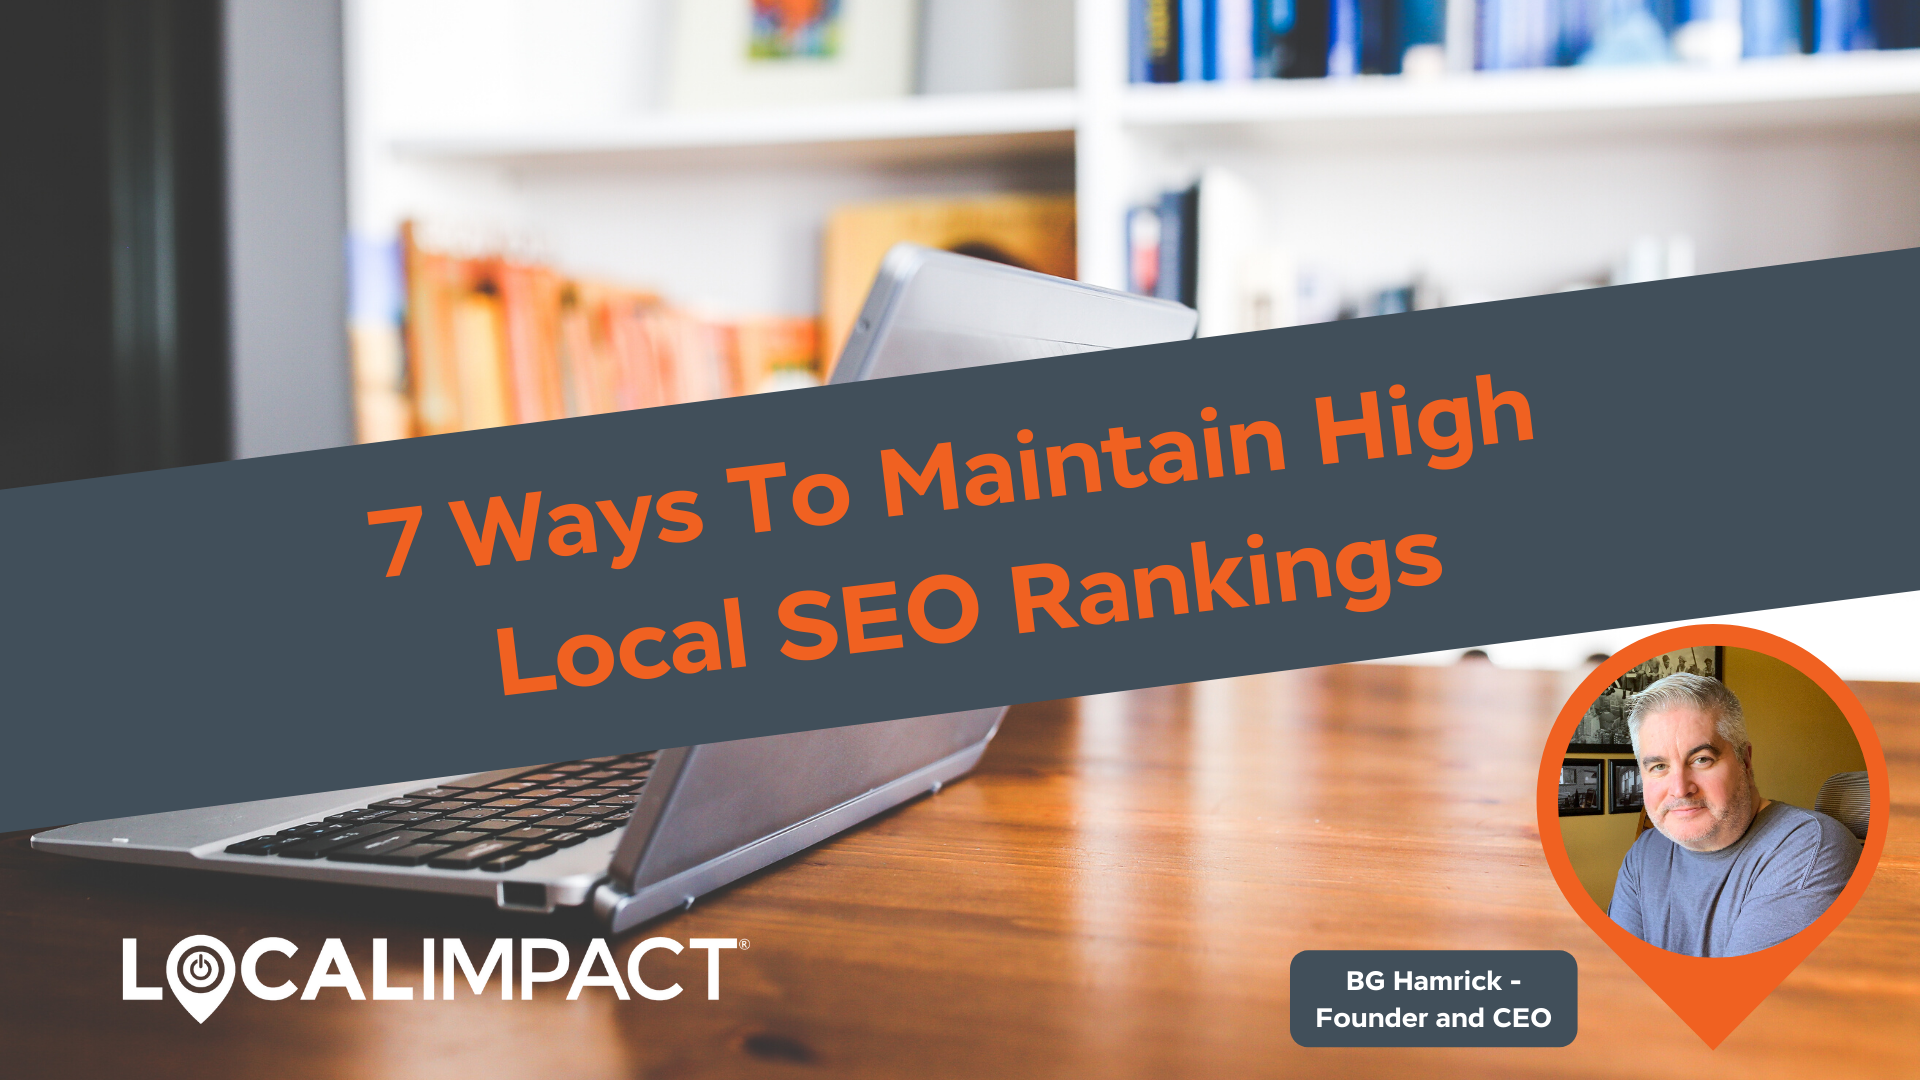 7 Ways to Maintain High Local SEO Rankings - Local Impact Blog